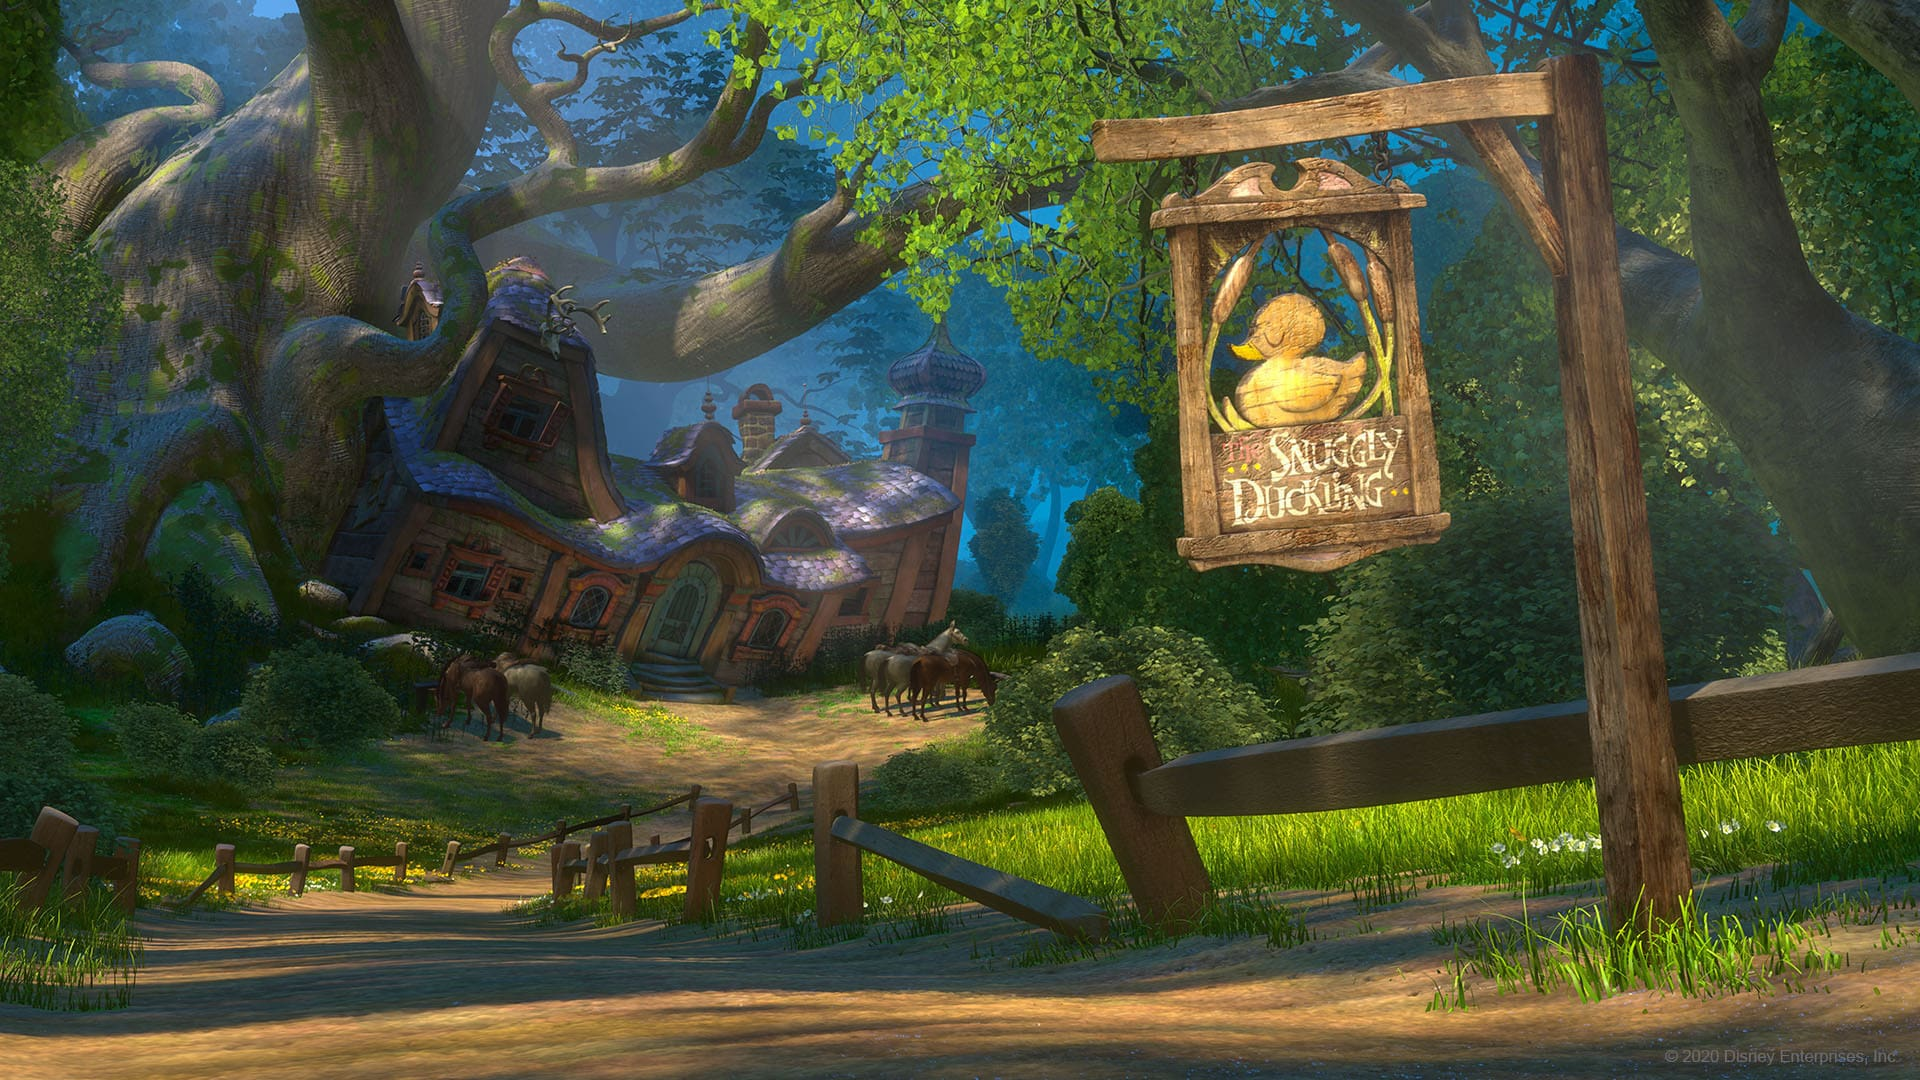 Snuggly Duckling from Tangled virtual background